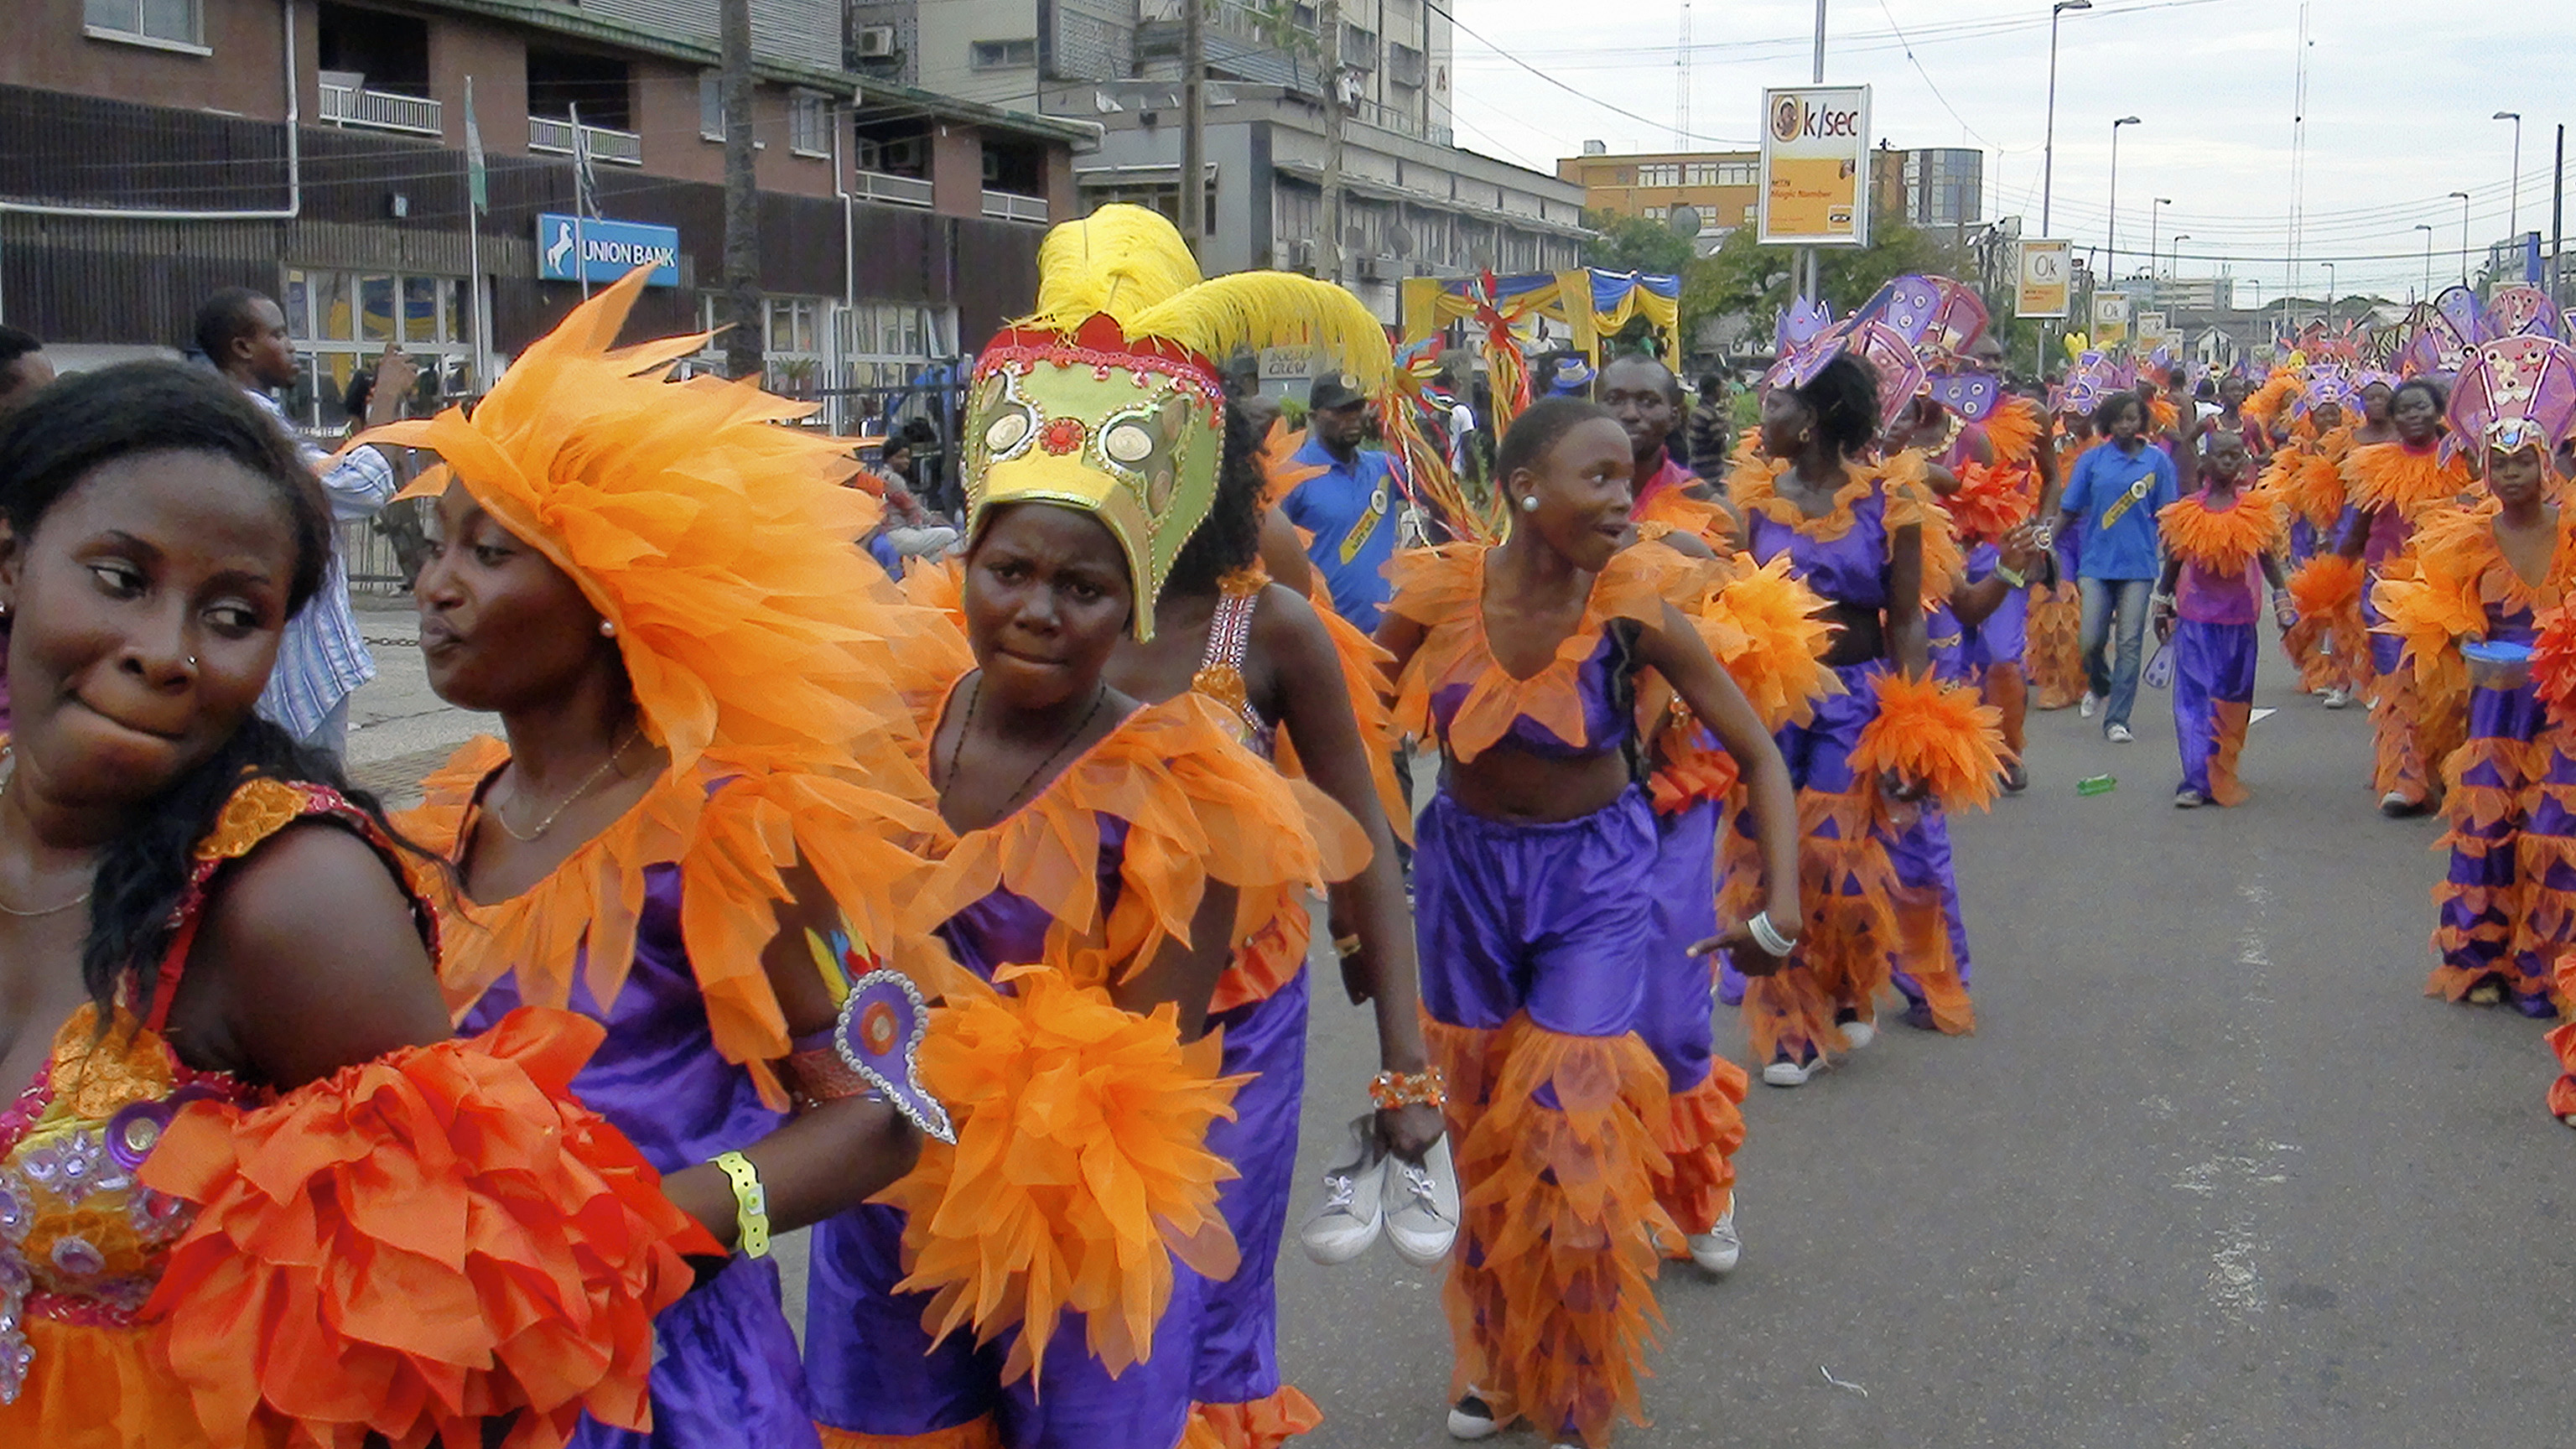 Lagos city carnival in pictures